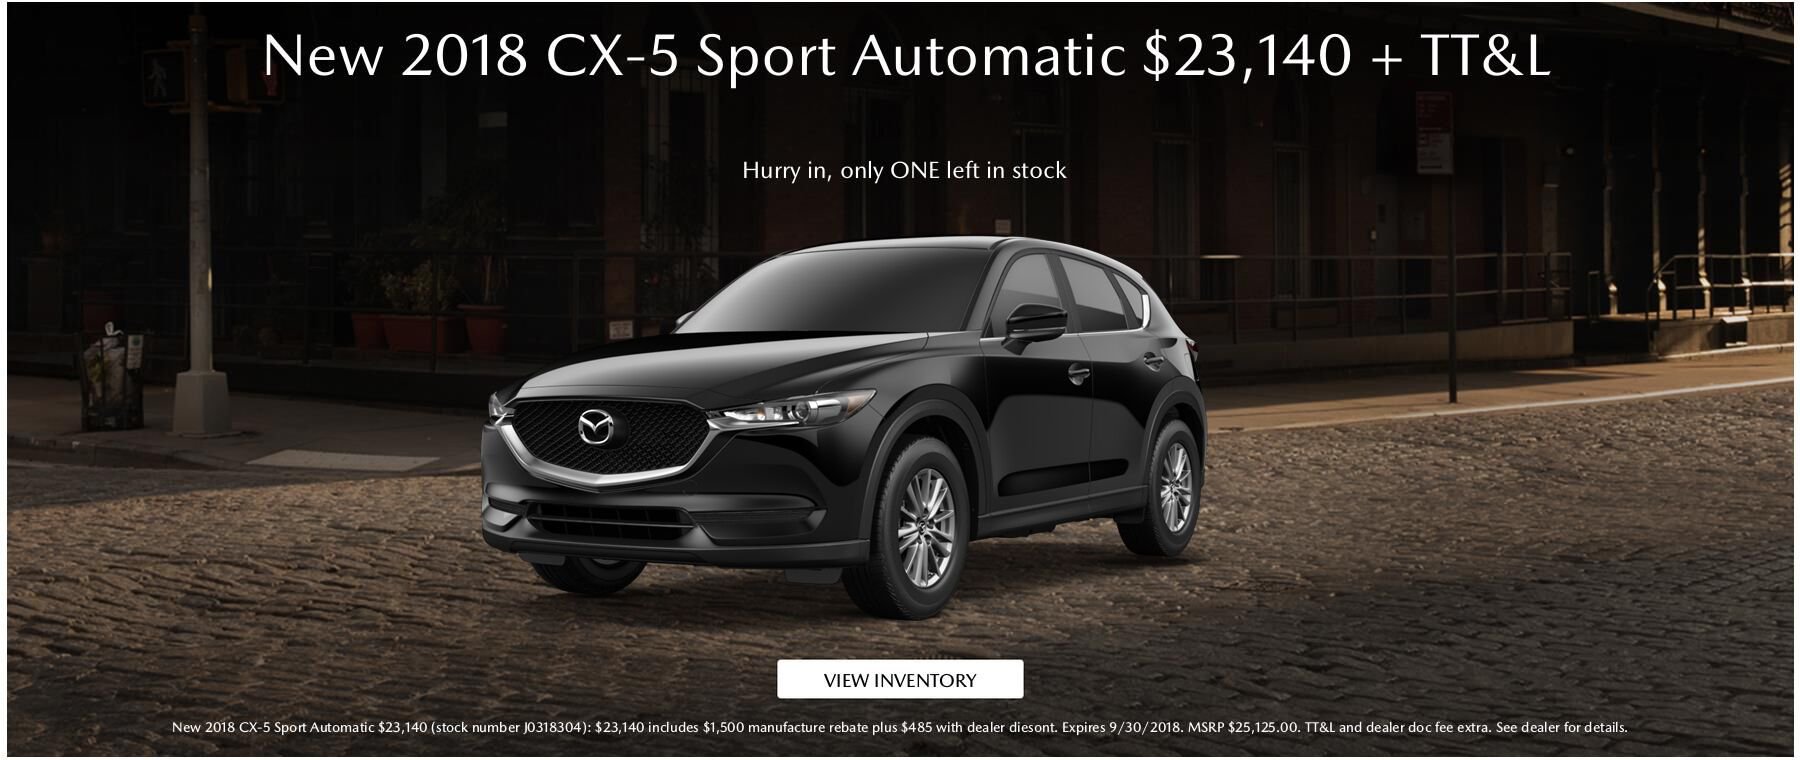 New 2018 Mazda CX-5 Sport Automatic September Special